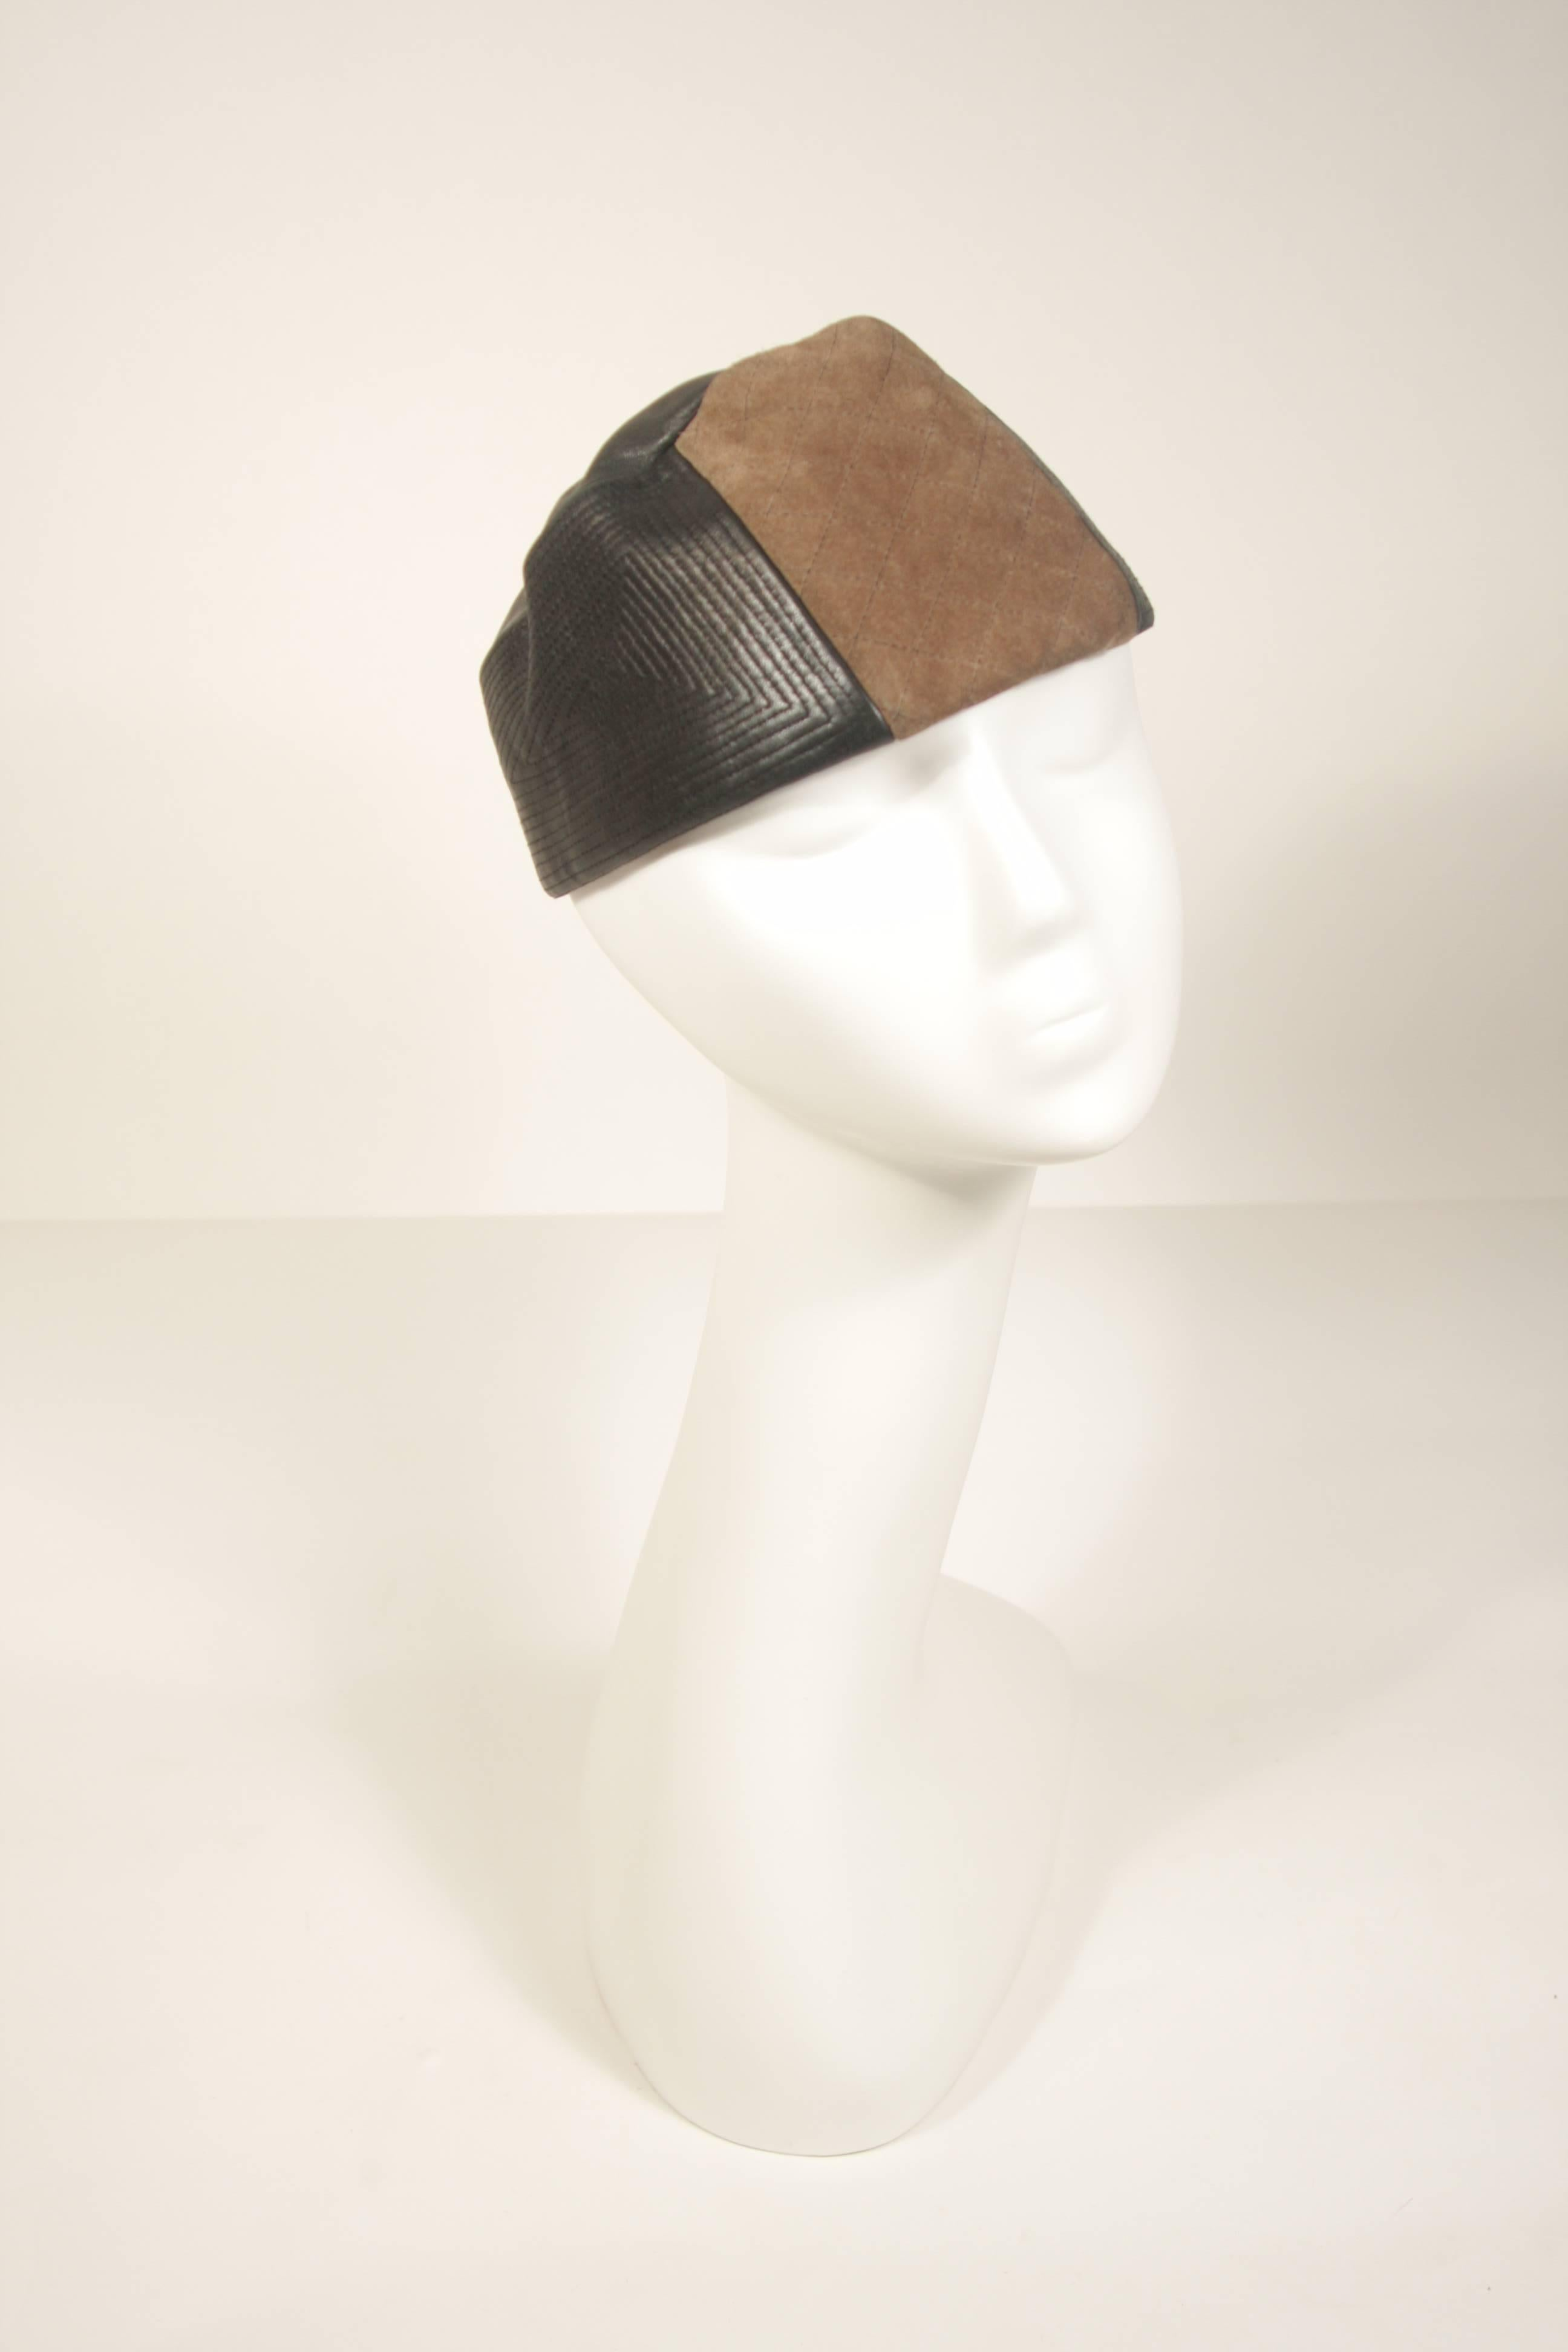 3fcfd530b15 YVES SAINT LAURENT RIVE GAUCHE Suede and Leather Hat with Top Stitch  Details For Sale at 1stdibs